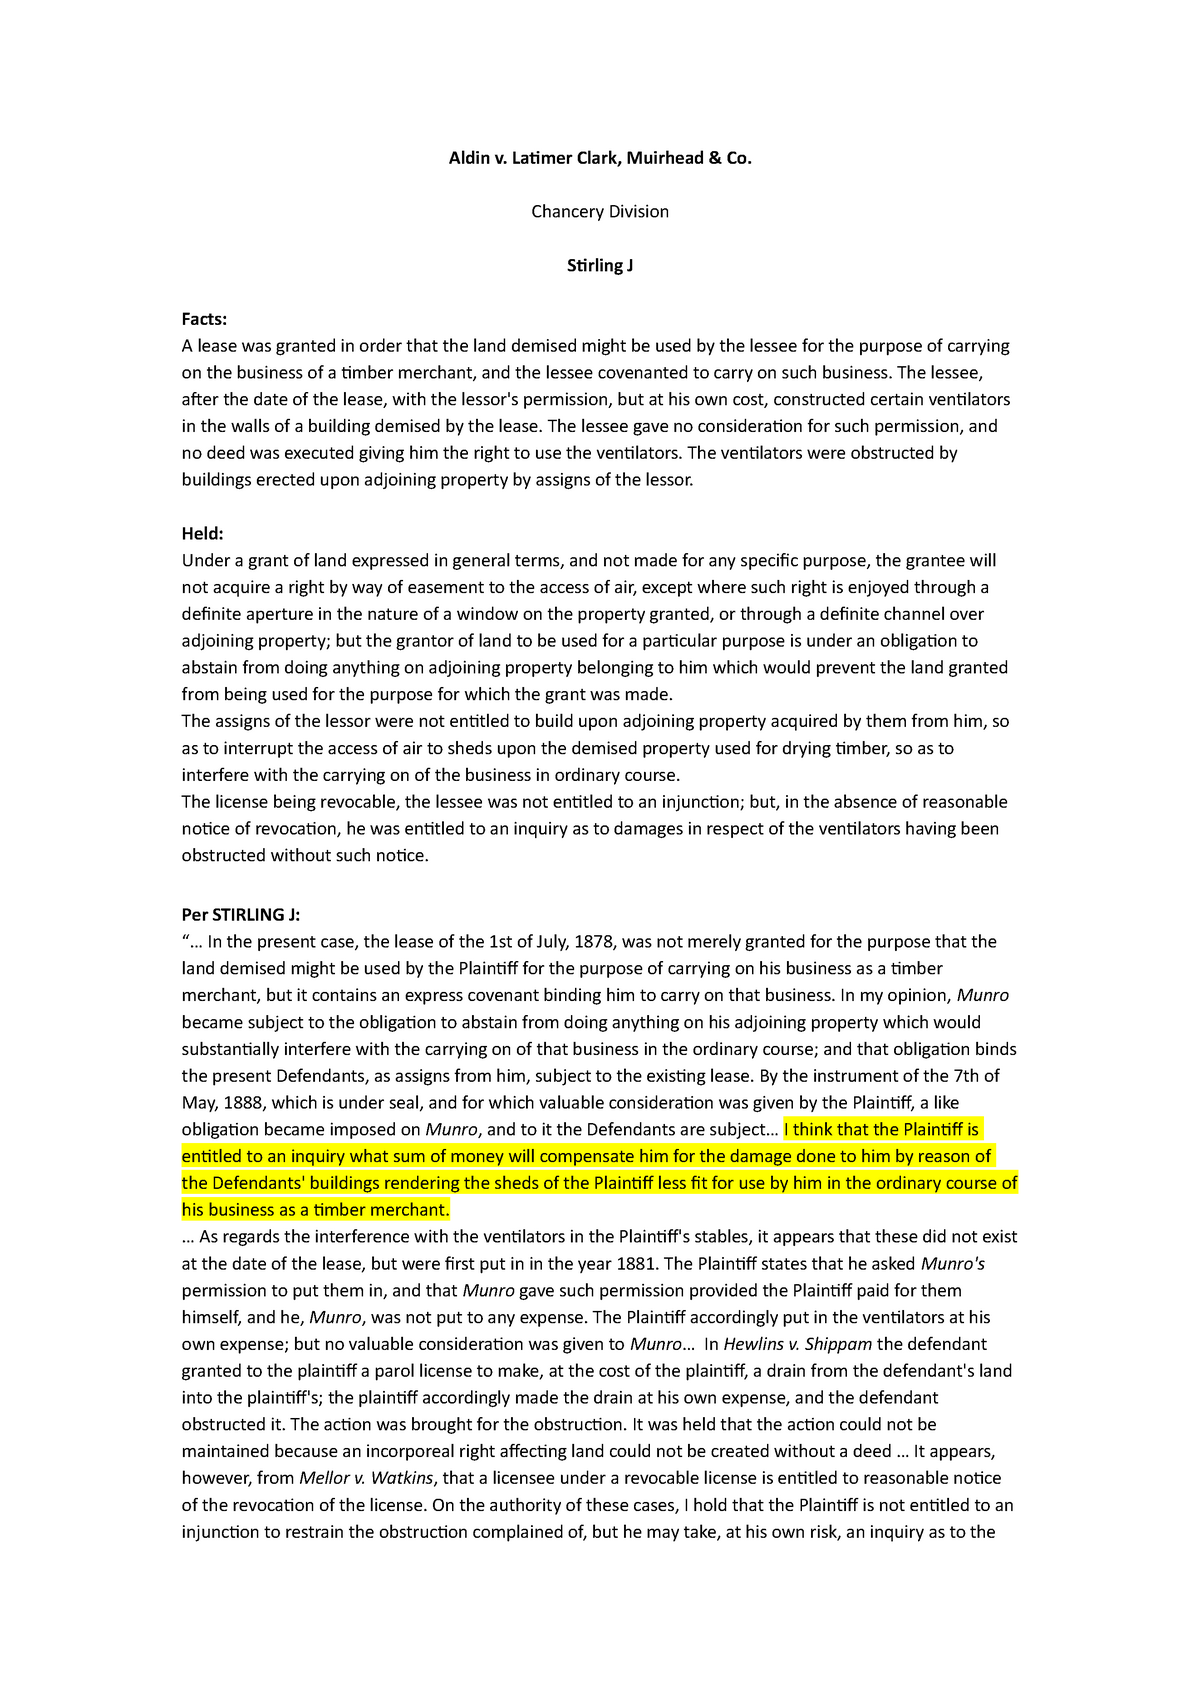 Help thesis for compare and contrast essay